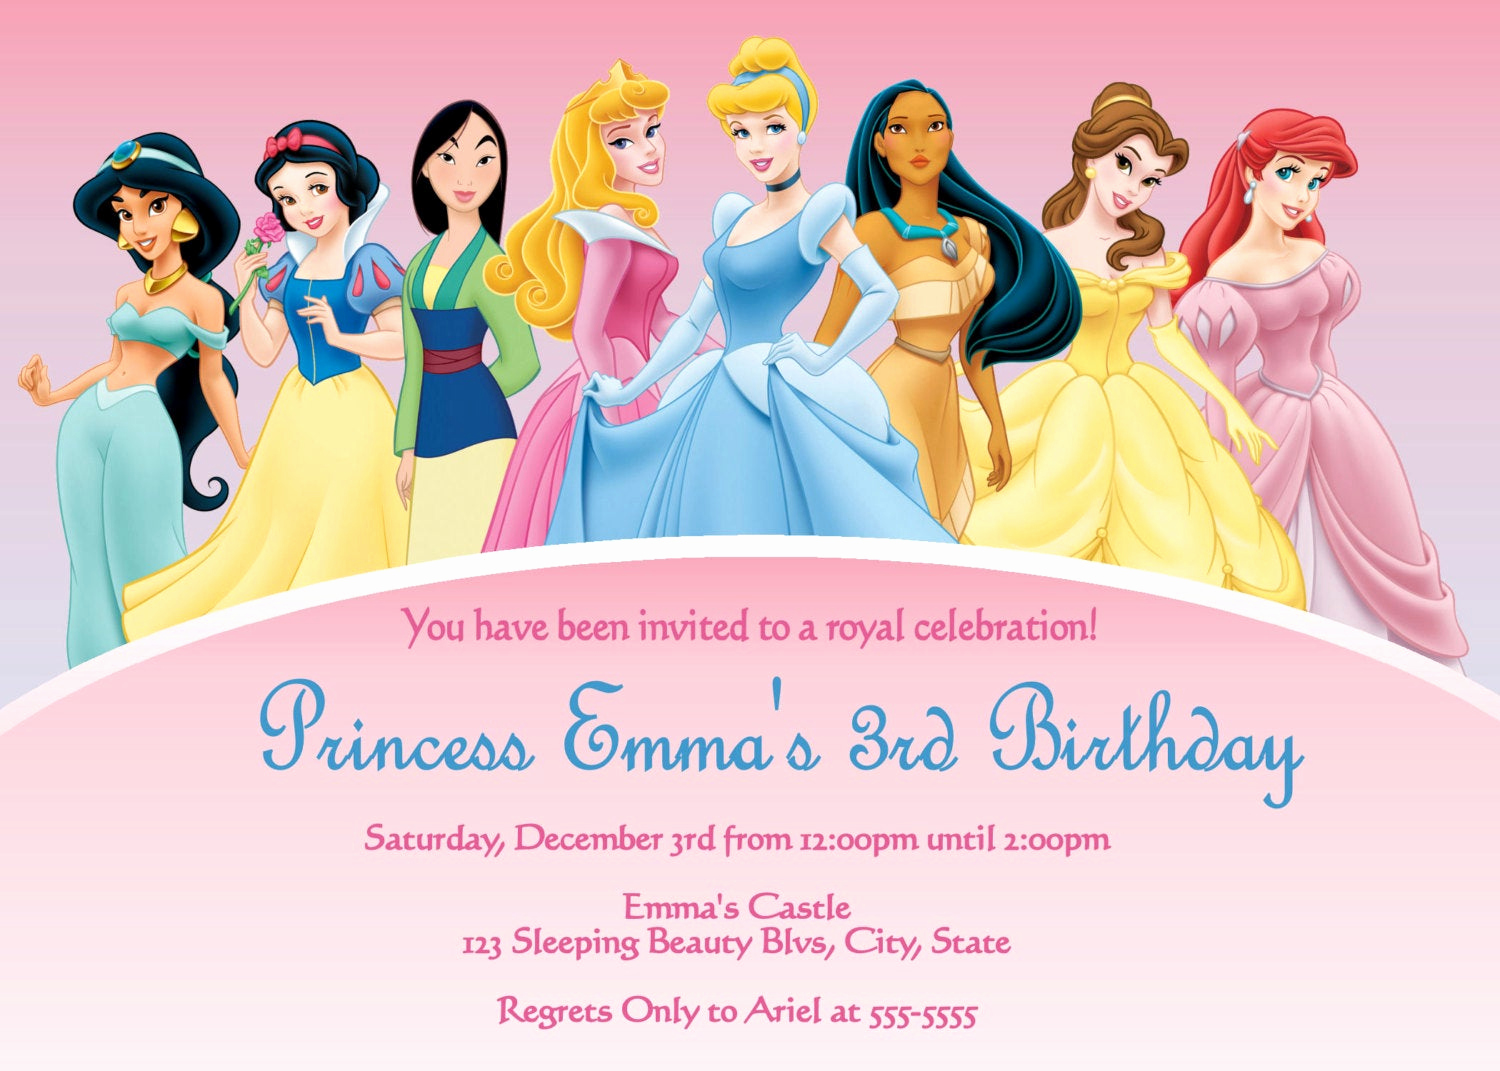 Disney Princess Invitation Templates Free Inspirational Disney Princess Digital Invitation by Preciouspixel On Etsy